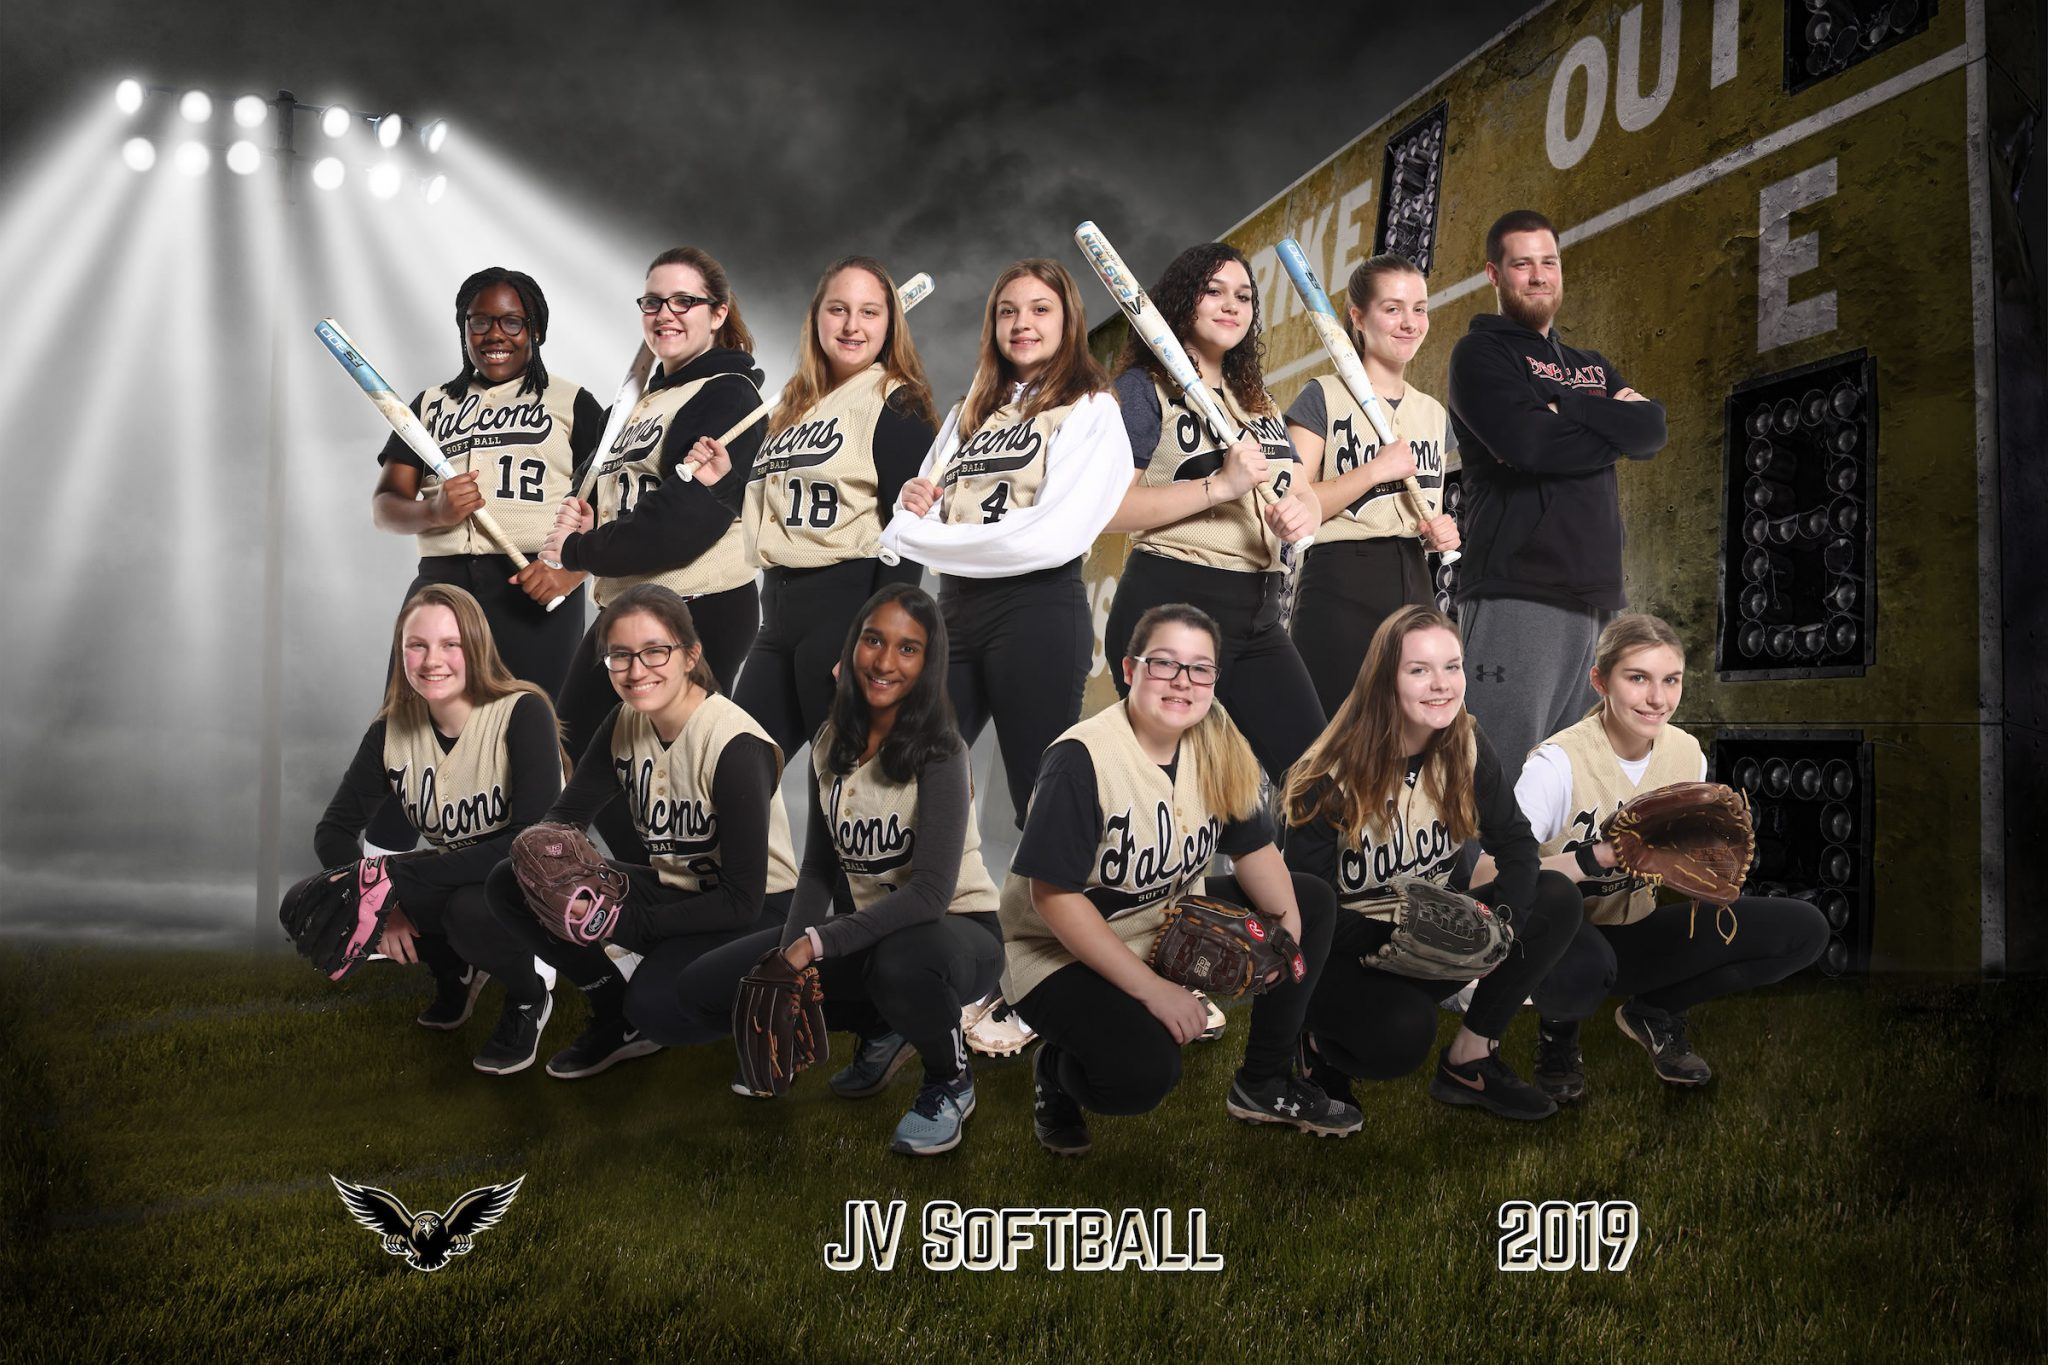 jv softball team picture 2019